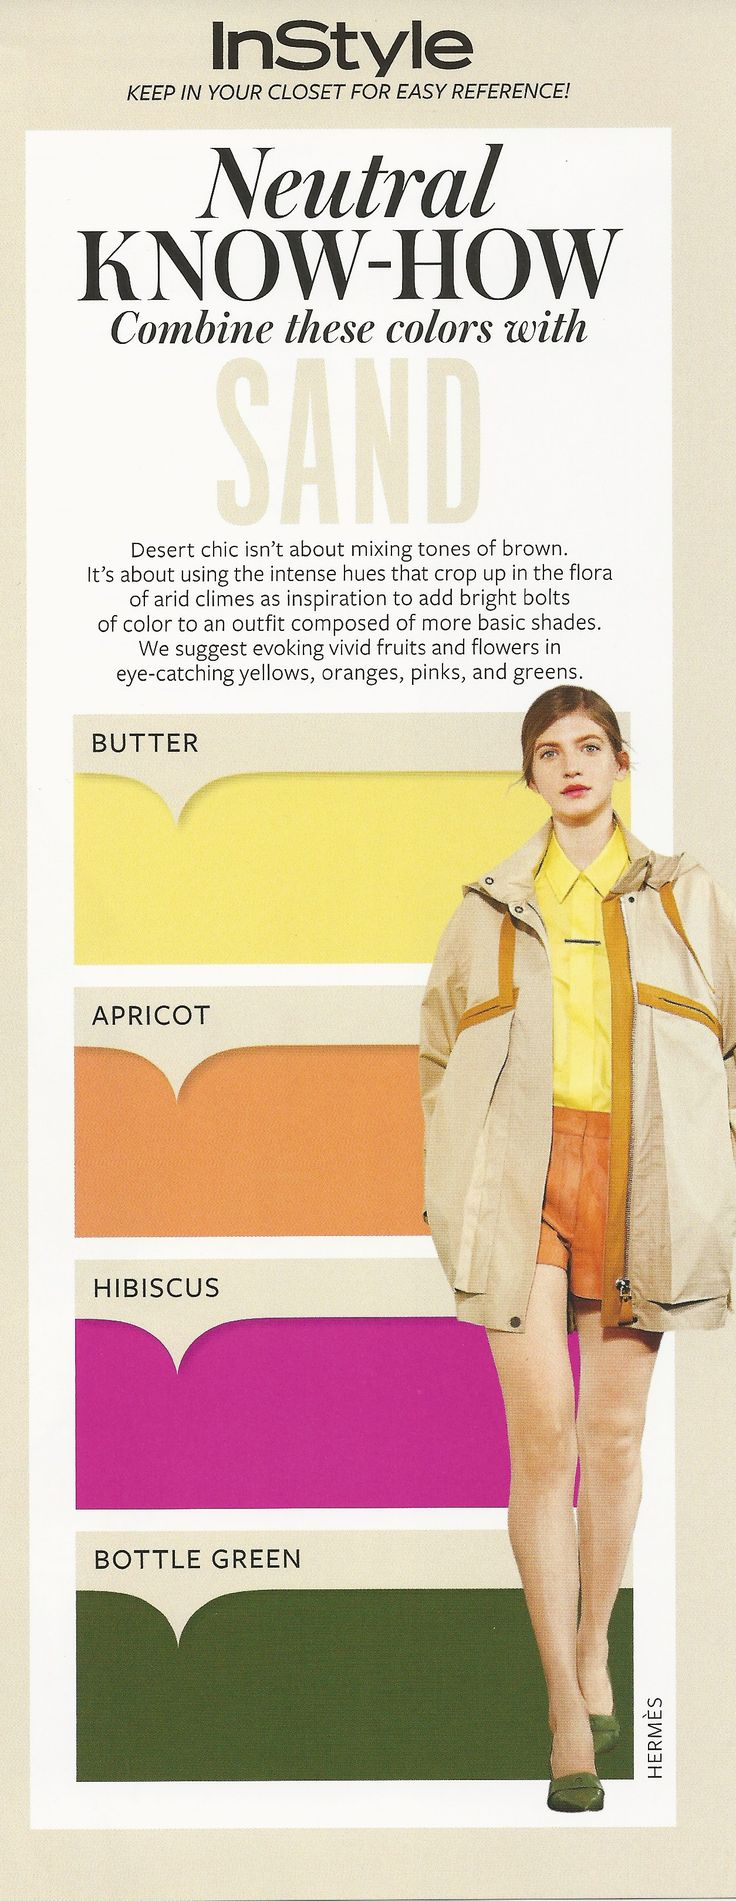 Neutral Know-How: Sand #instyle